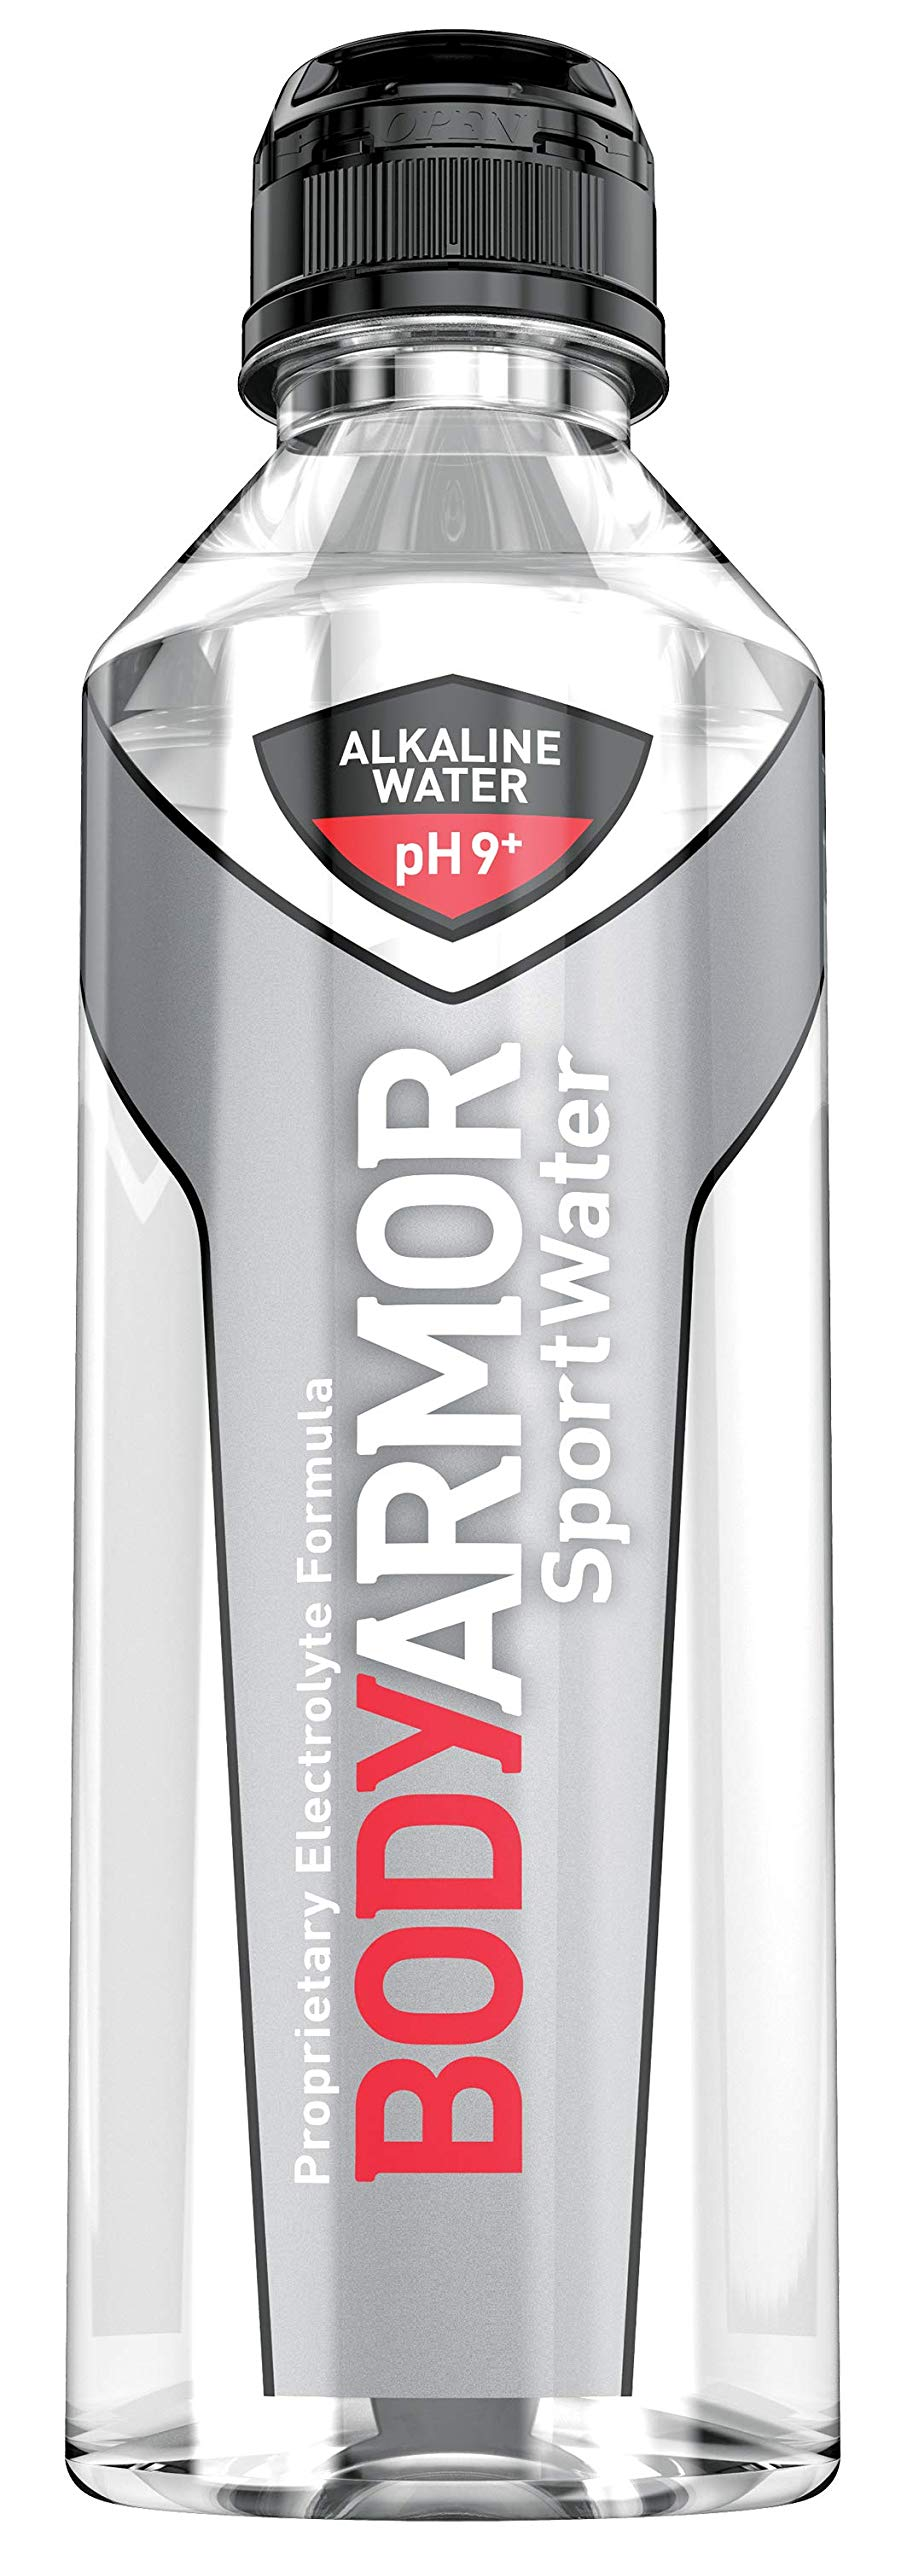 BODYARMOR SportWater Alkaline Water, Superior Hydration, High Alkaline Water pH 9+, Electrolytes, Perfect for your Active Lifestyle, 700mL Sport Cap (Pack of 24)